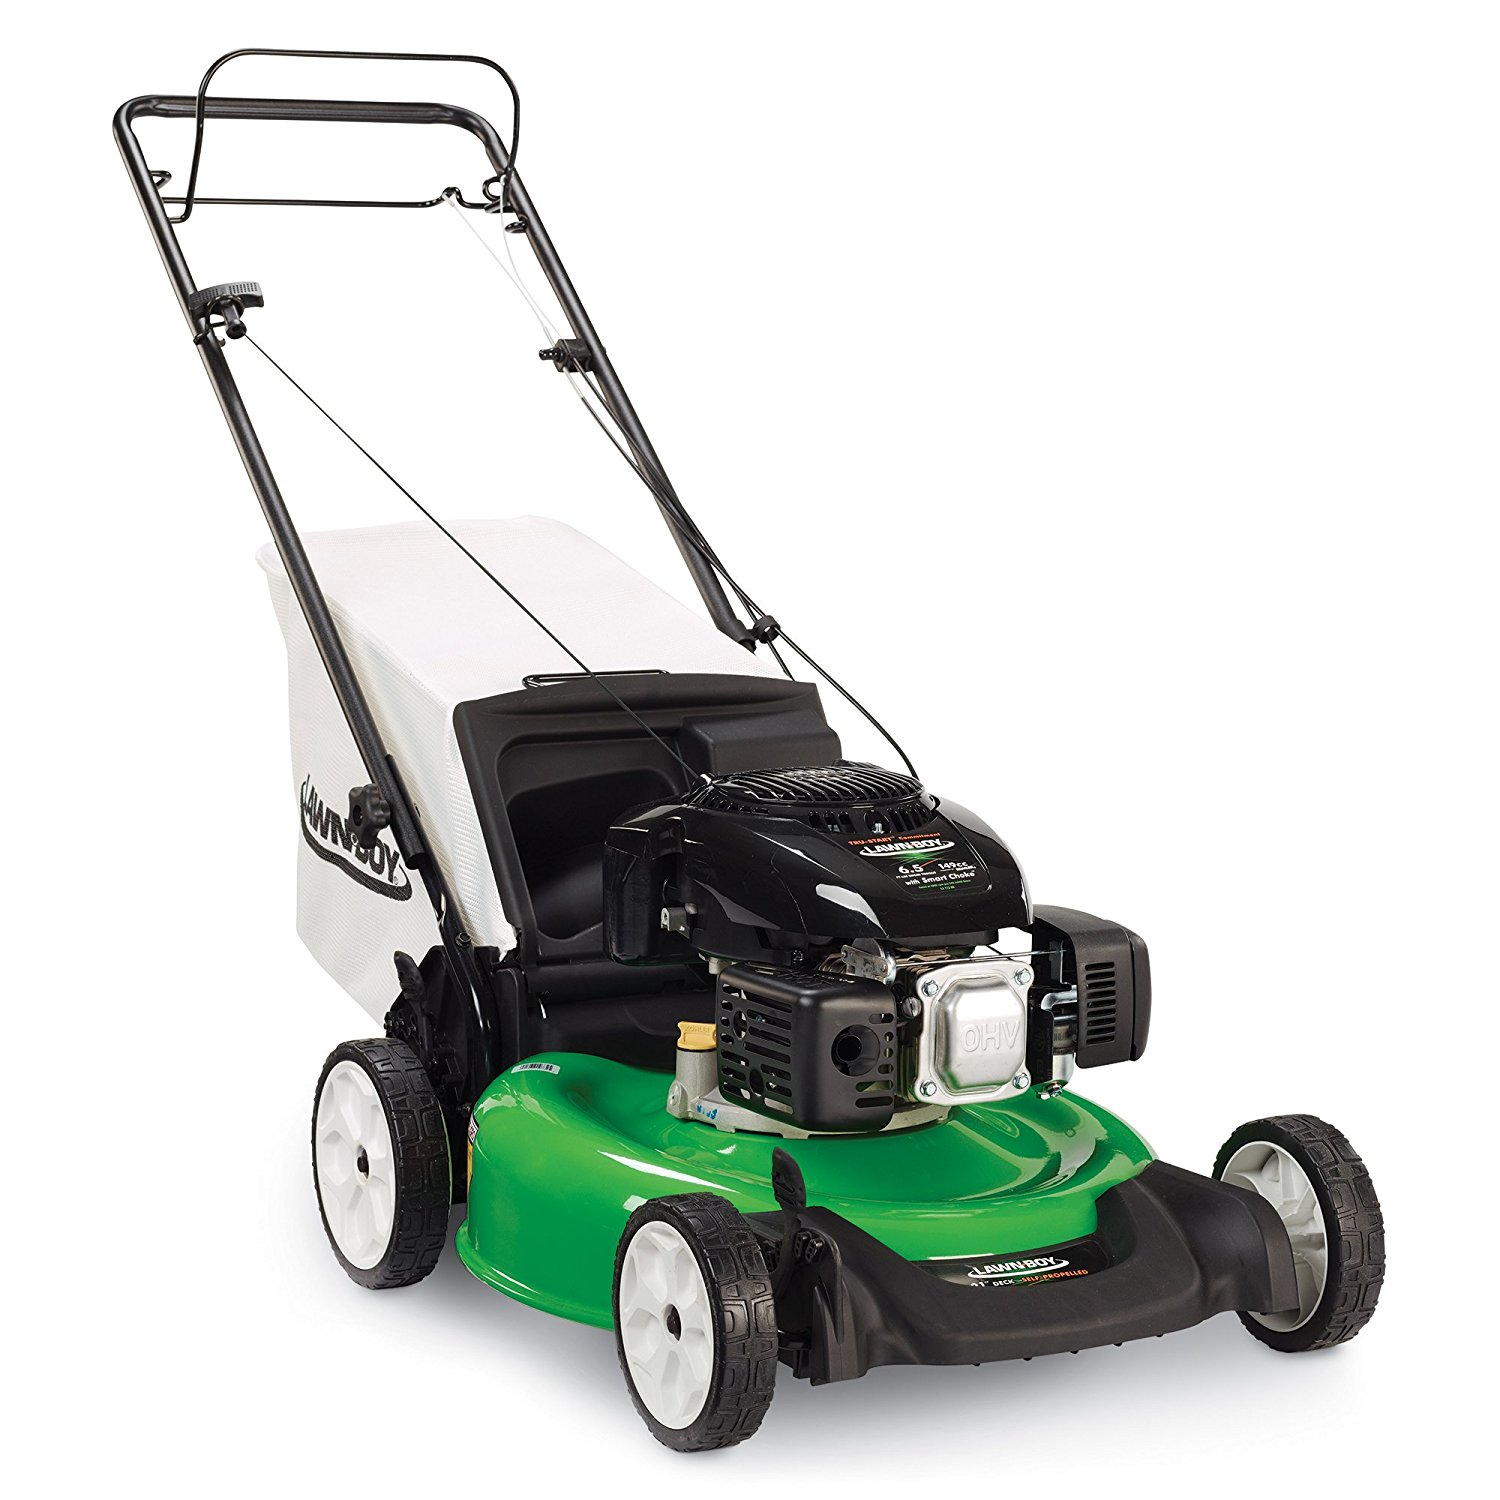 Lawn-Boy 10732 Kohler XT6 OHV, Rear Wheel Drive Self Propelled Gas Lawn Mower